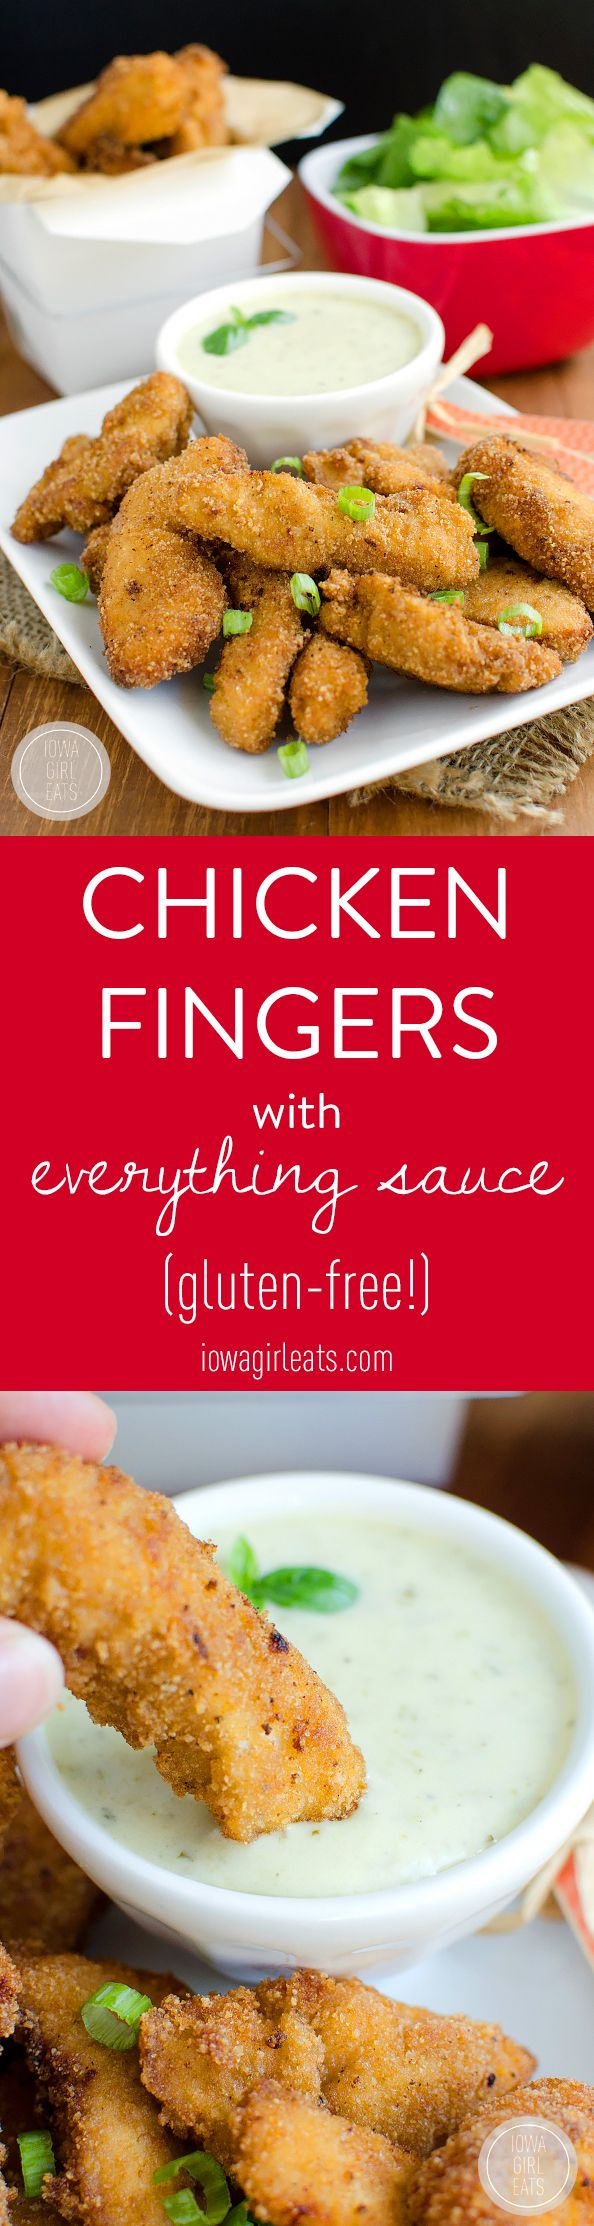 Your+family+will+flip+for+crispy+Chicken+Fingers+with+Everything+Sauce!+Crunchy+chicken+fingers+served+with+a+homemade+dipping+sauce+that's+great+with+just+about+everything.++#glutenfree+|+iowagirleats.com